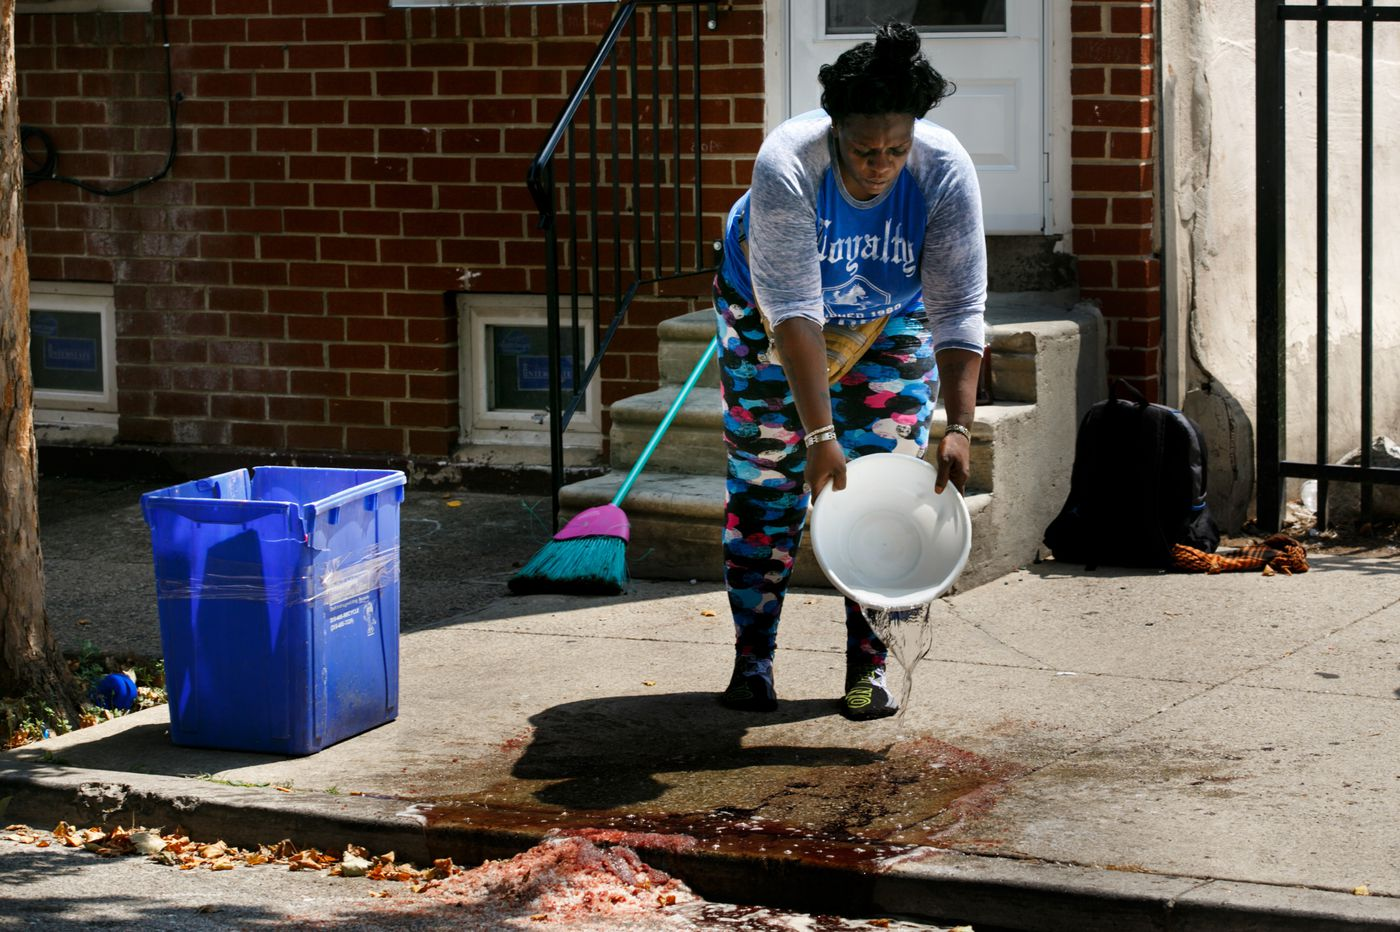 Where 4 youths were shot in N. Philly, she can't stop washing blood off the sidewalk